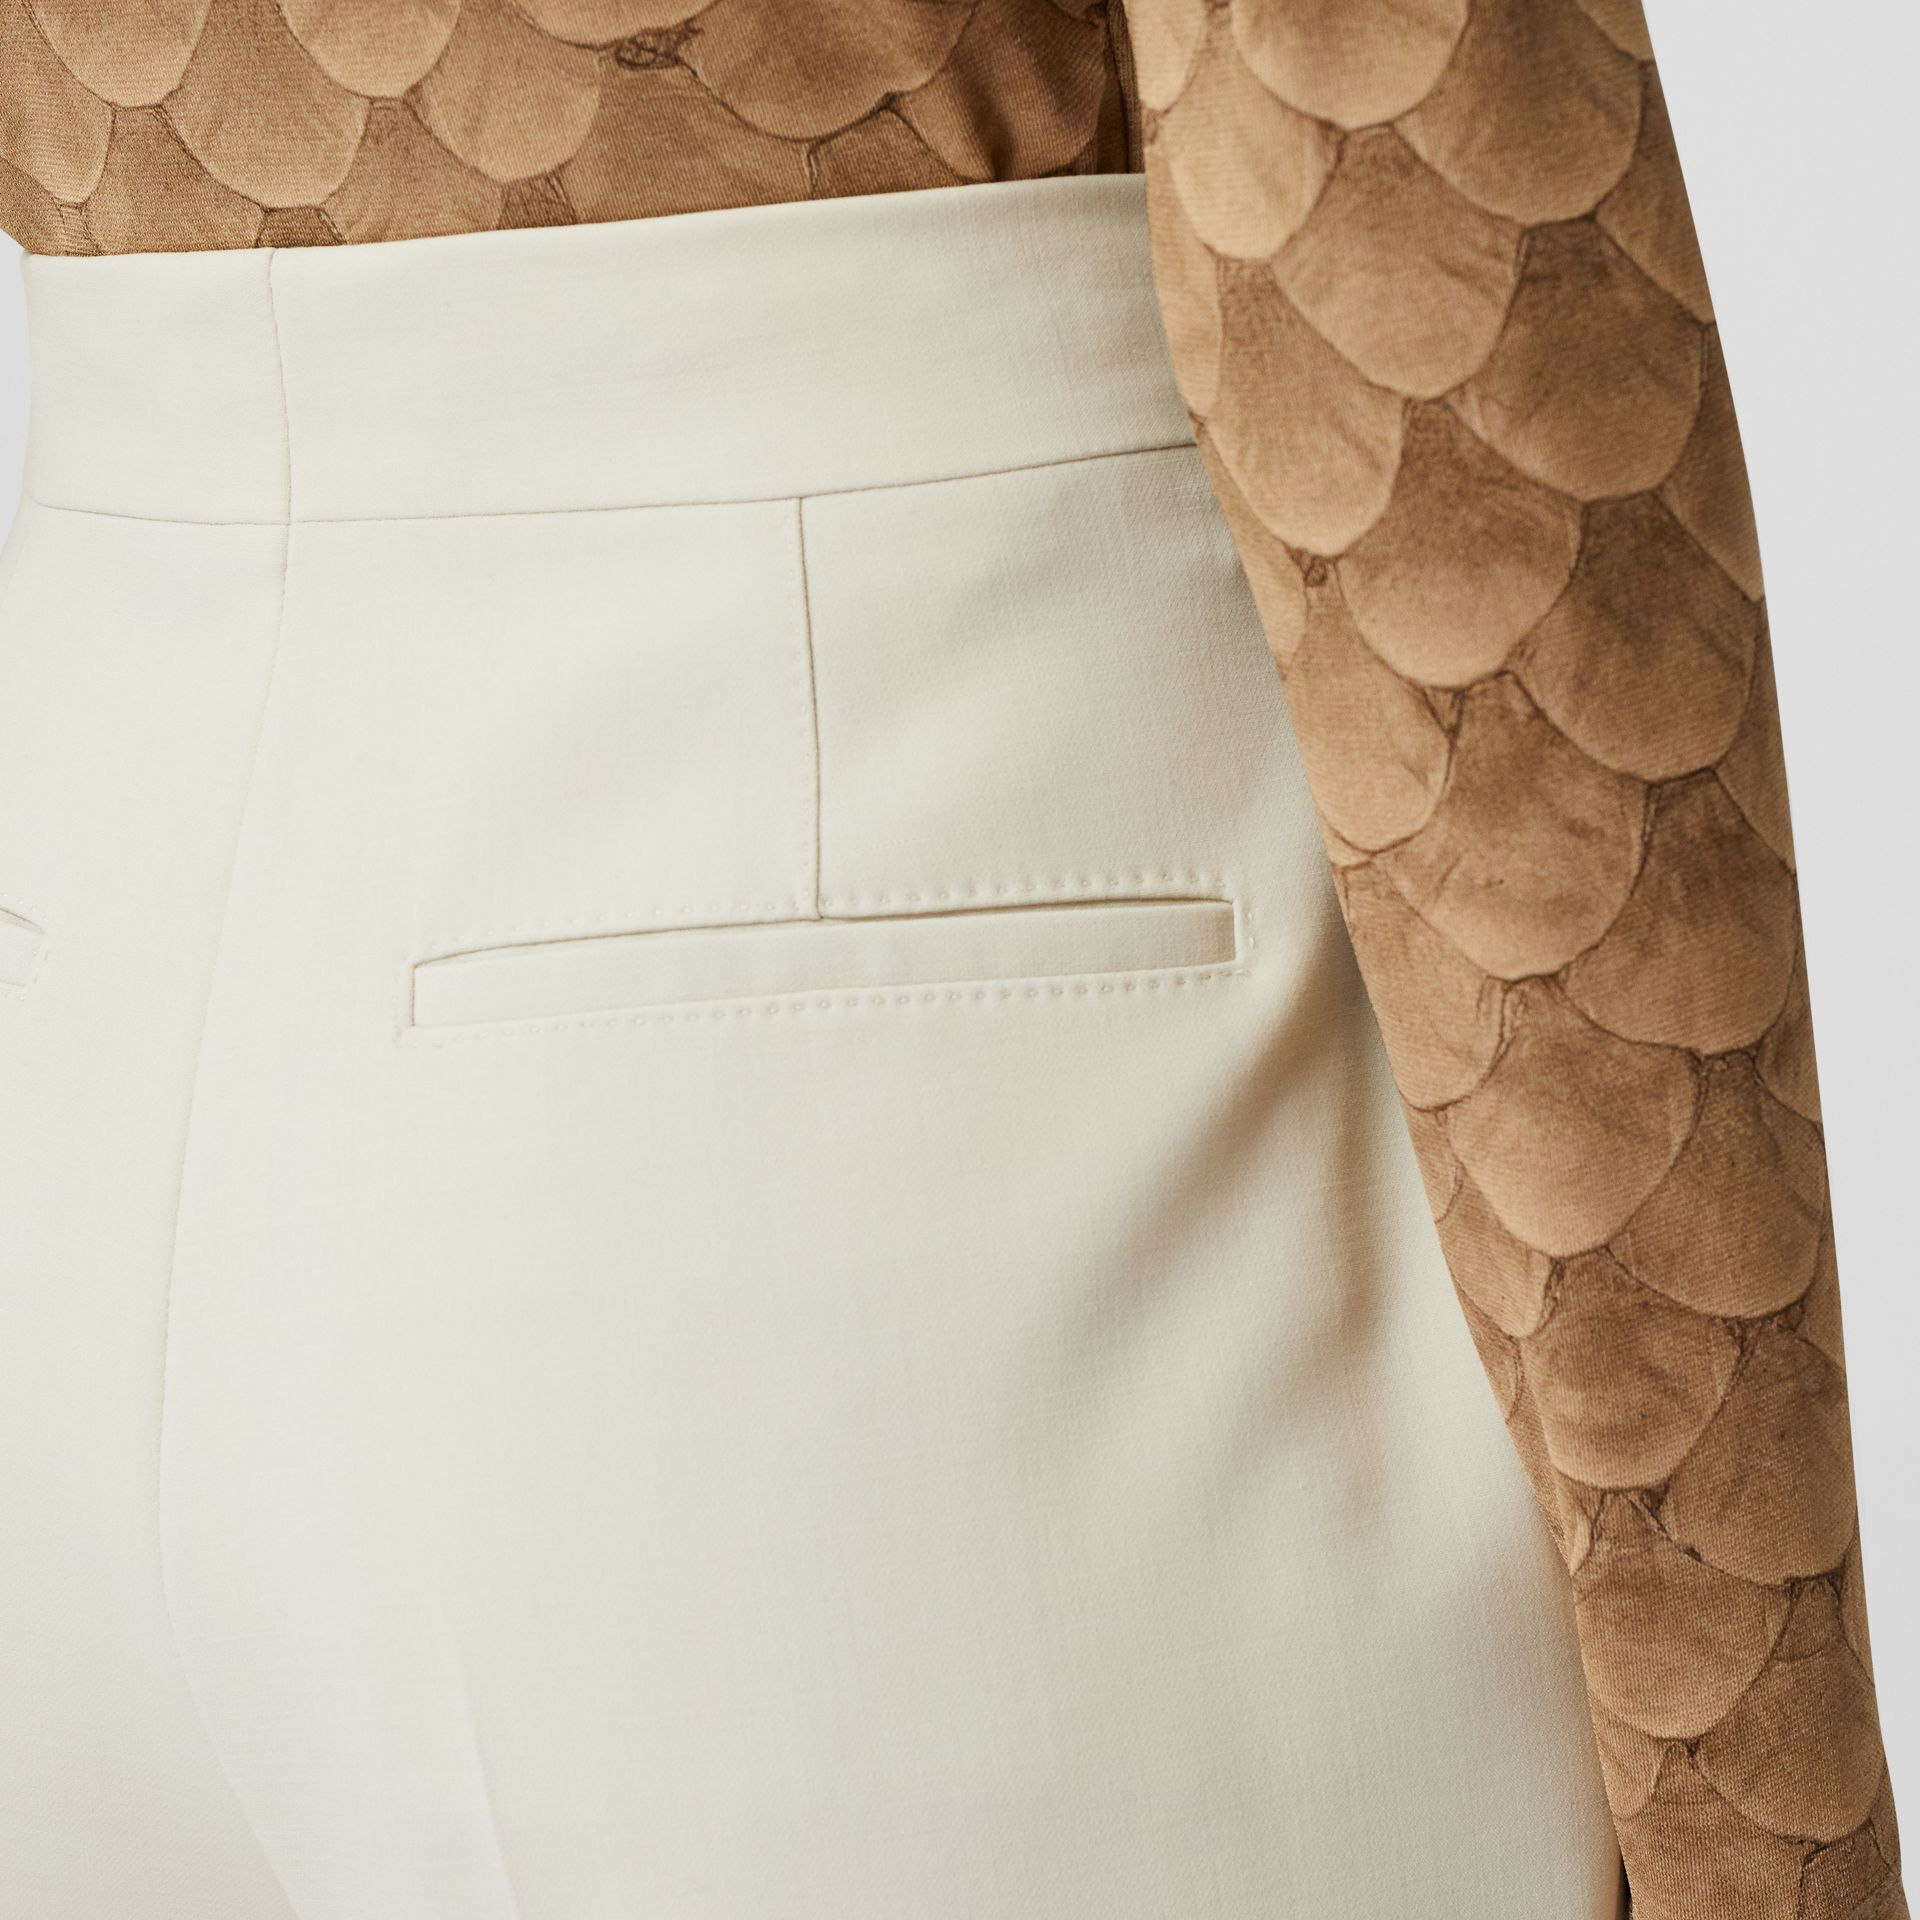 Pantalon tailleur droit en laine stretch (Ocre Pâle) - Femme | Burberry - photo de la galerie 4